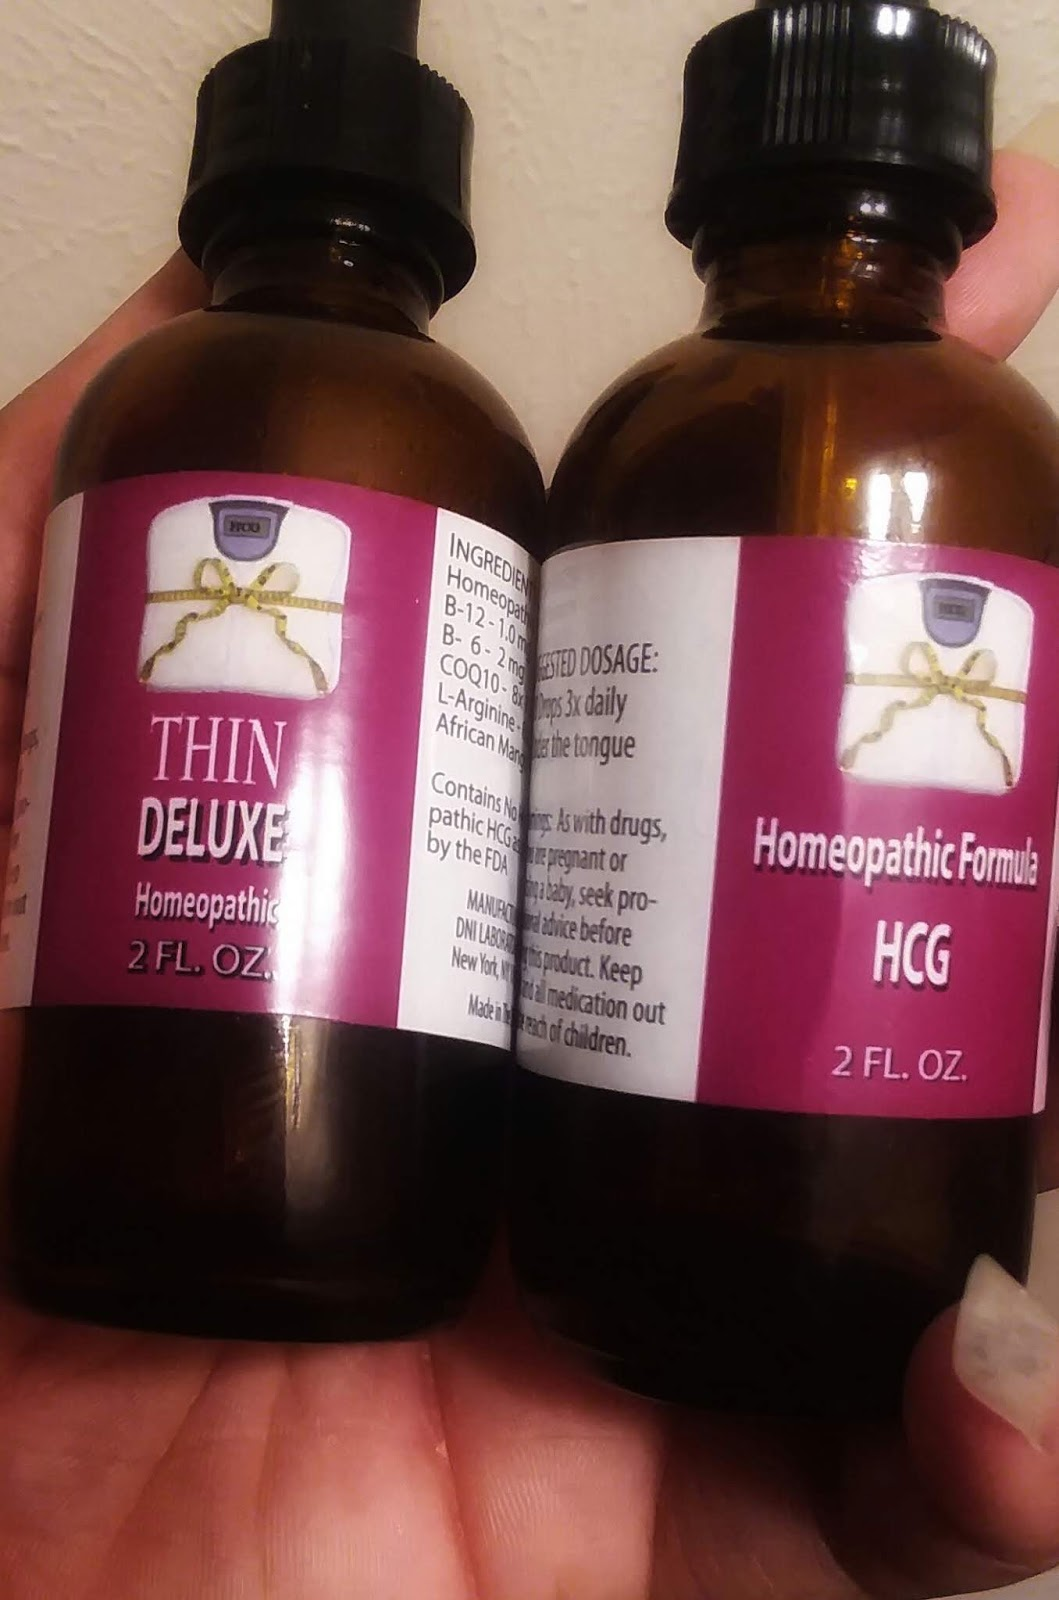 Do hcg drops really work for weight loss